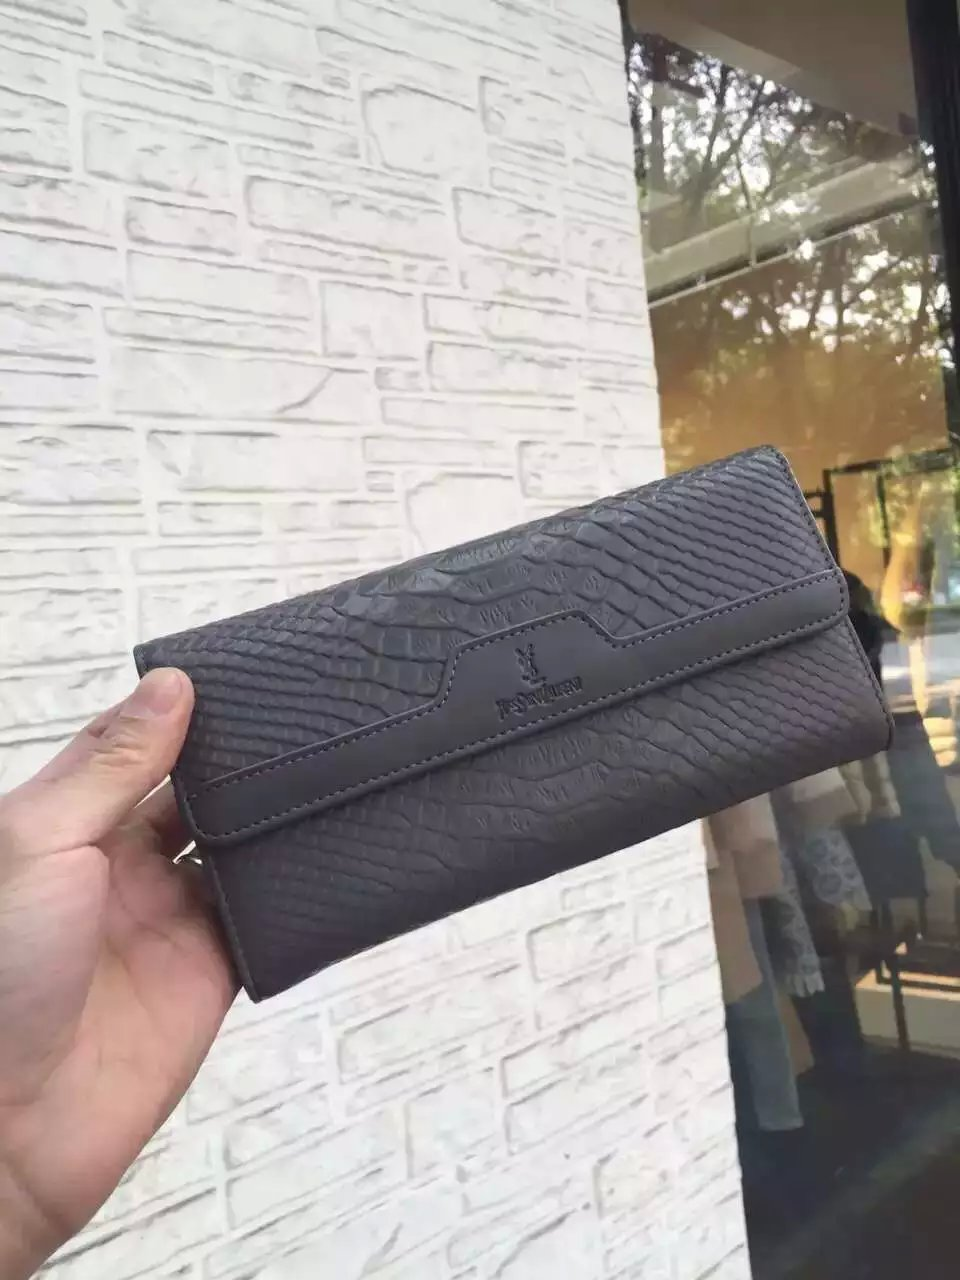 2016 Saint Laurent Bags Cheap Sale-Saint Laurent Classic Monogram Clutch in Dark Grey Python Embossed Calfskin Leather